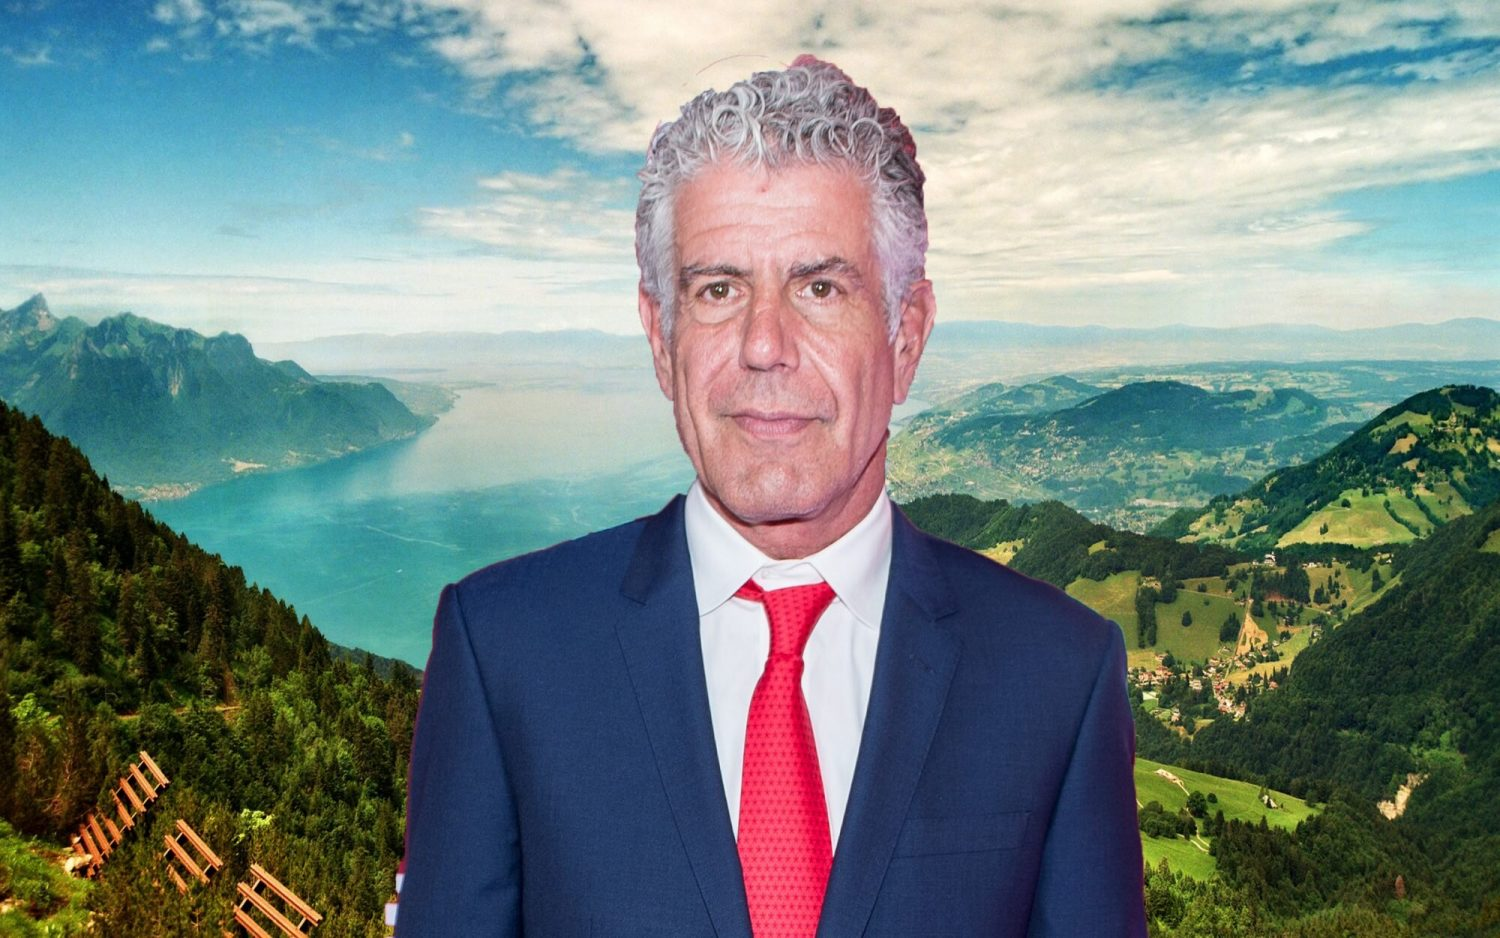 six things you probably don't know about anthony bourdain